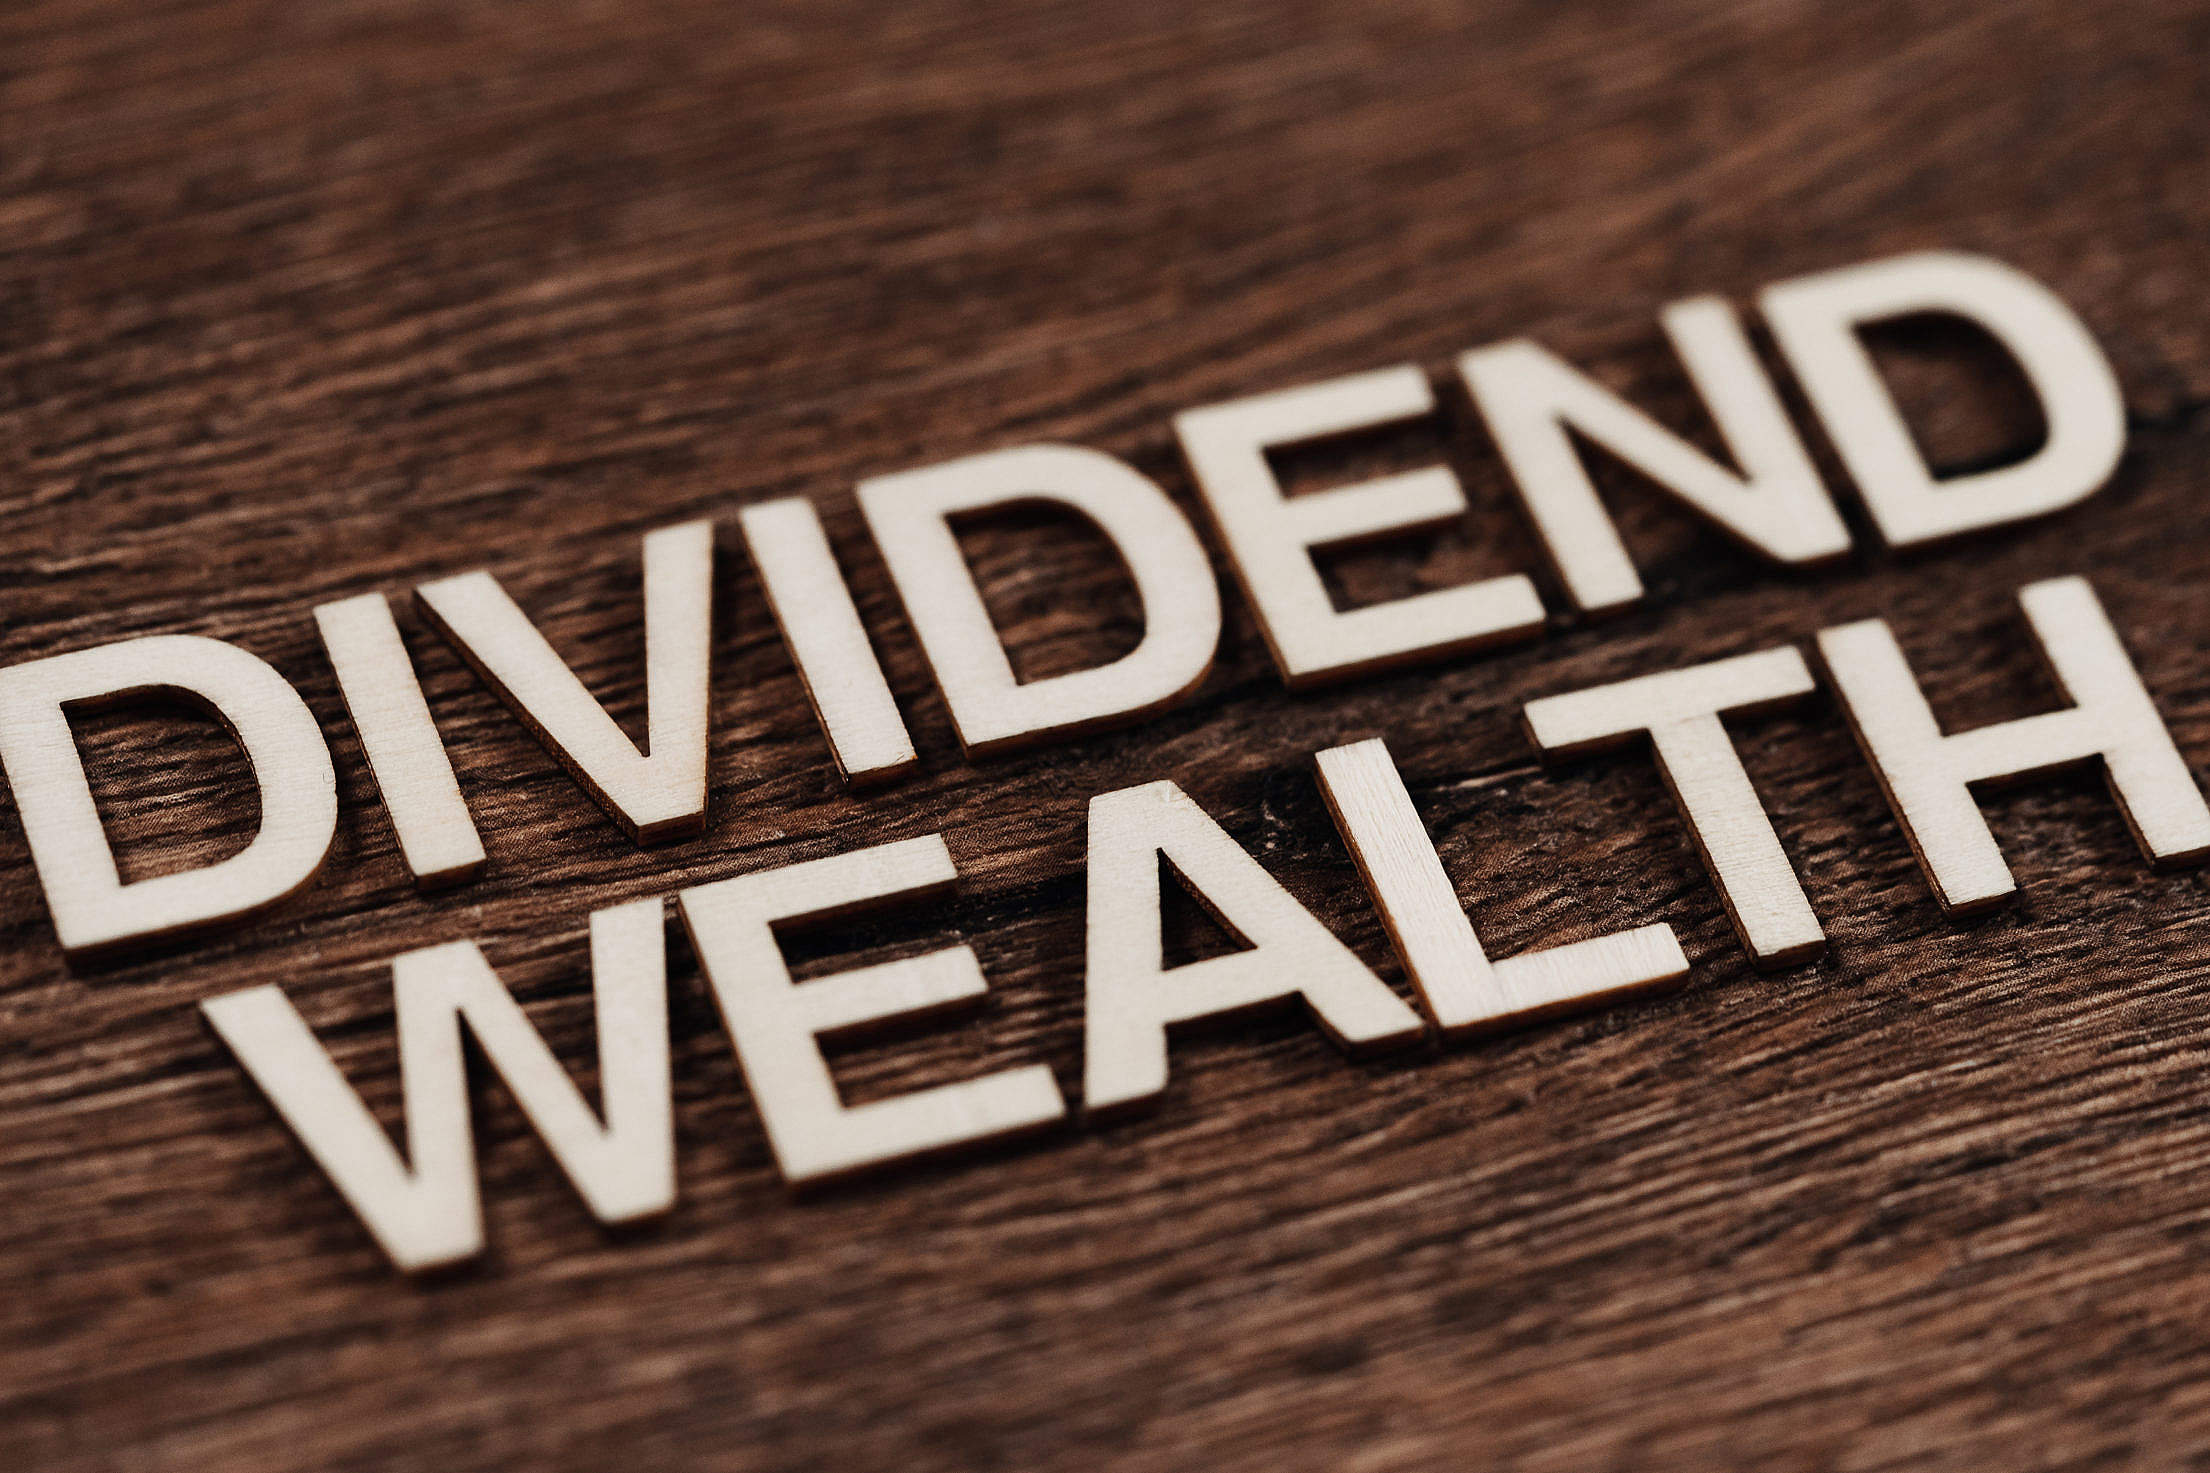 Dividend Wealth Free Stock Photo